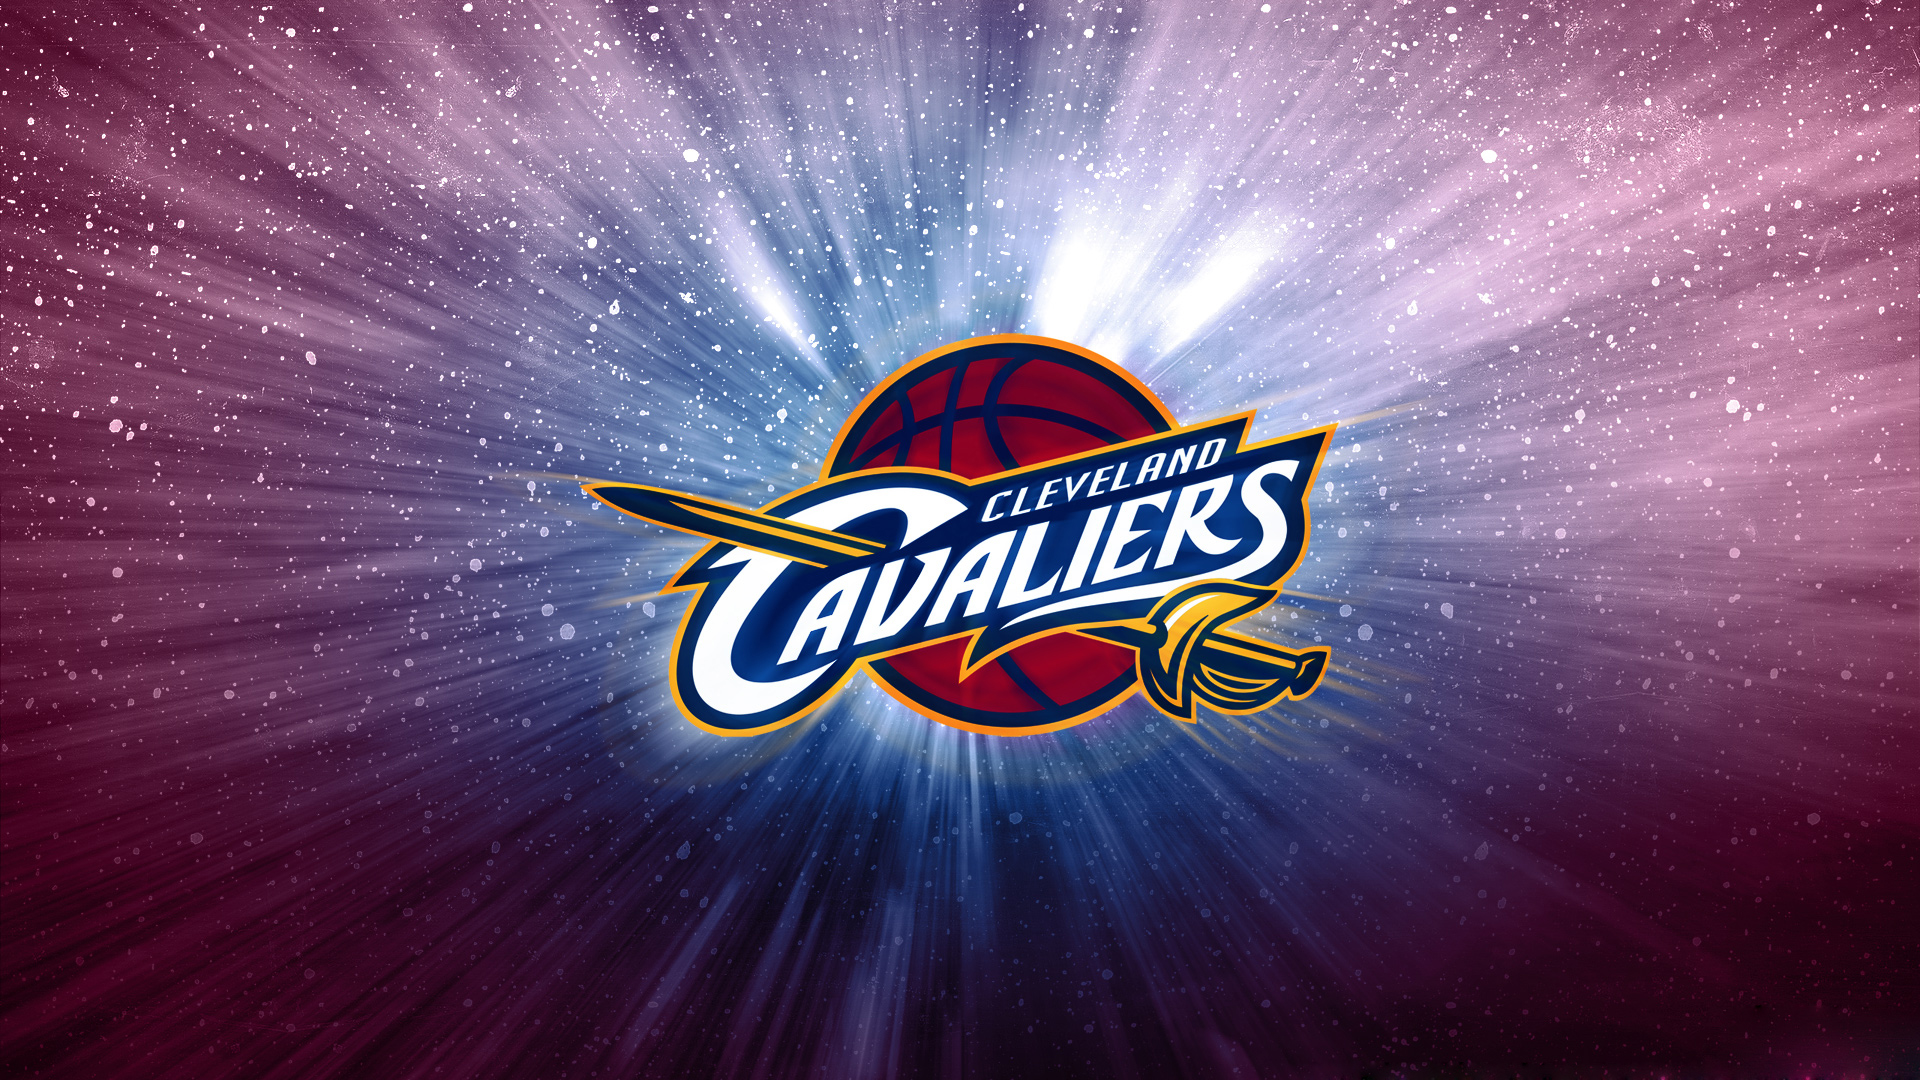 Mac 3d Wallpapers Free Download Cleveland Cavaliers Logo Wallpapers Free Download